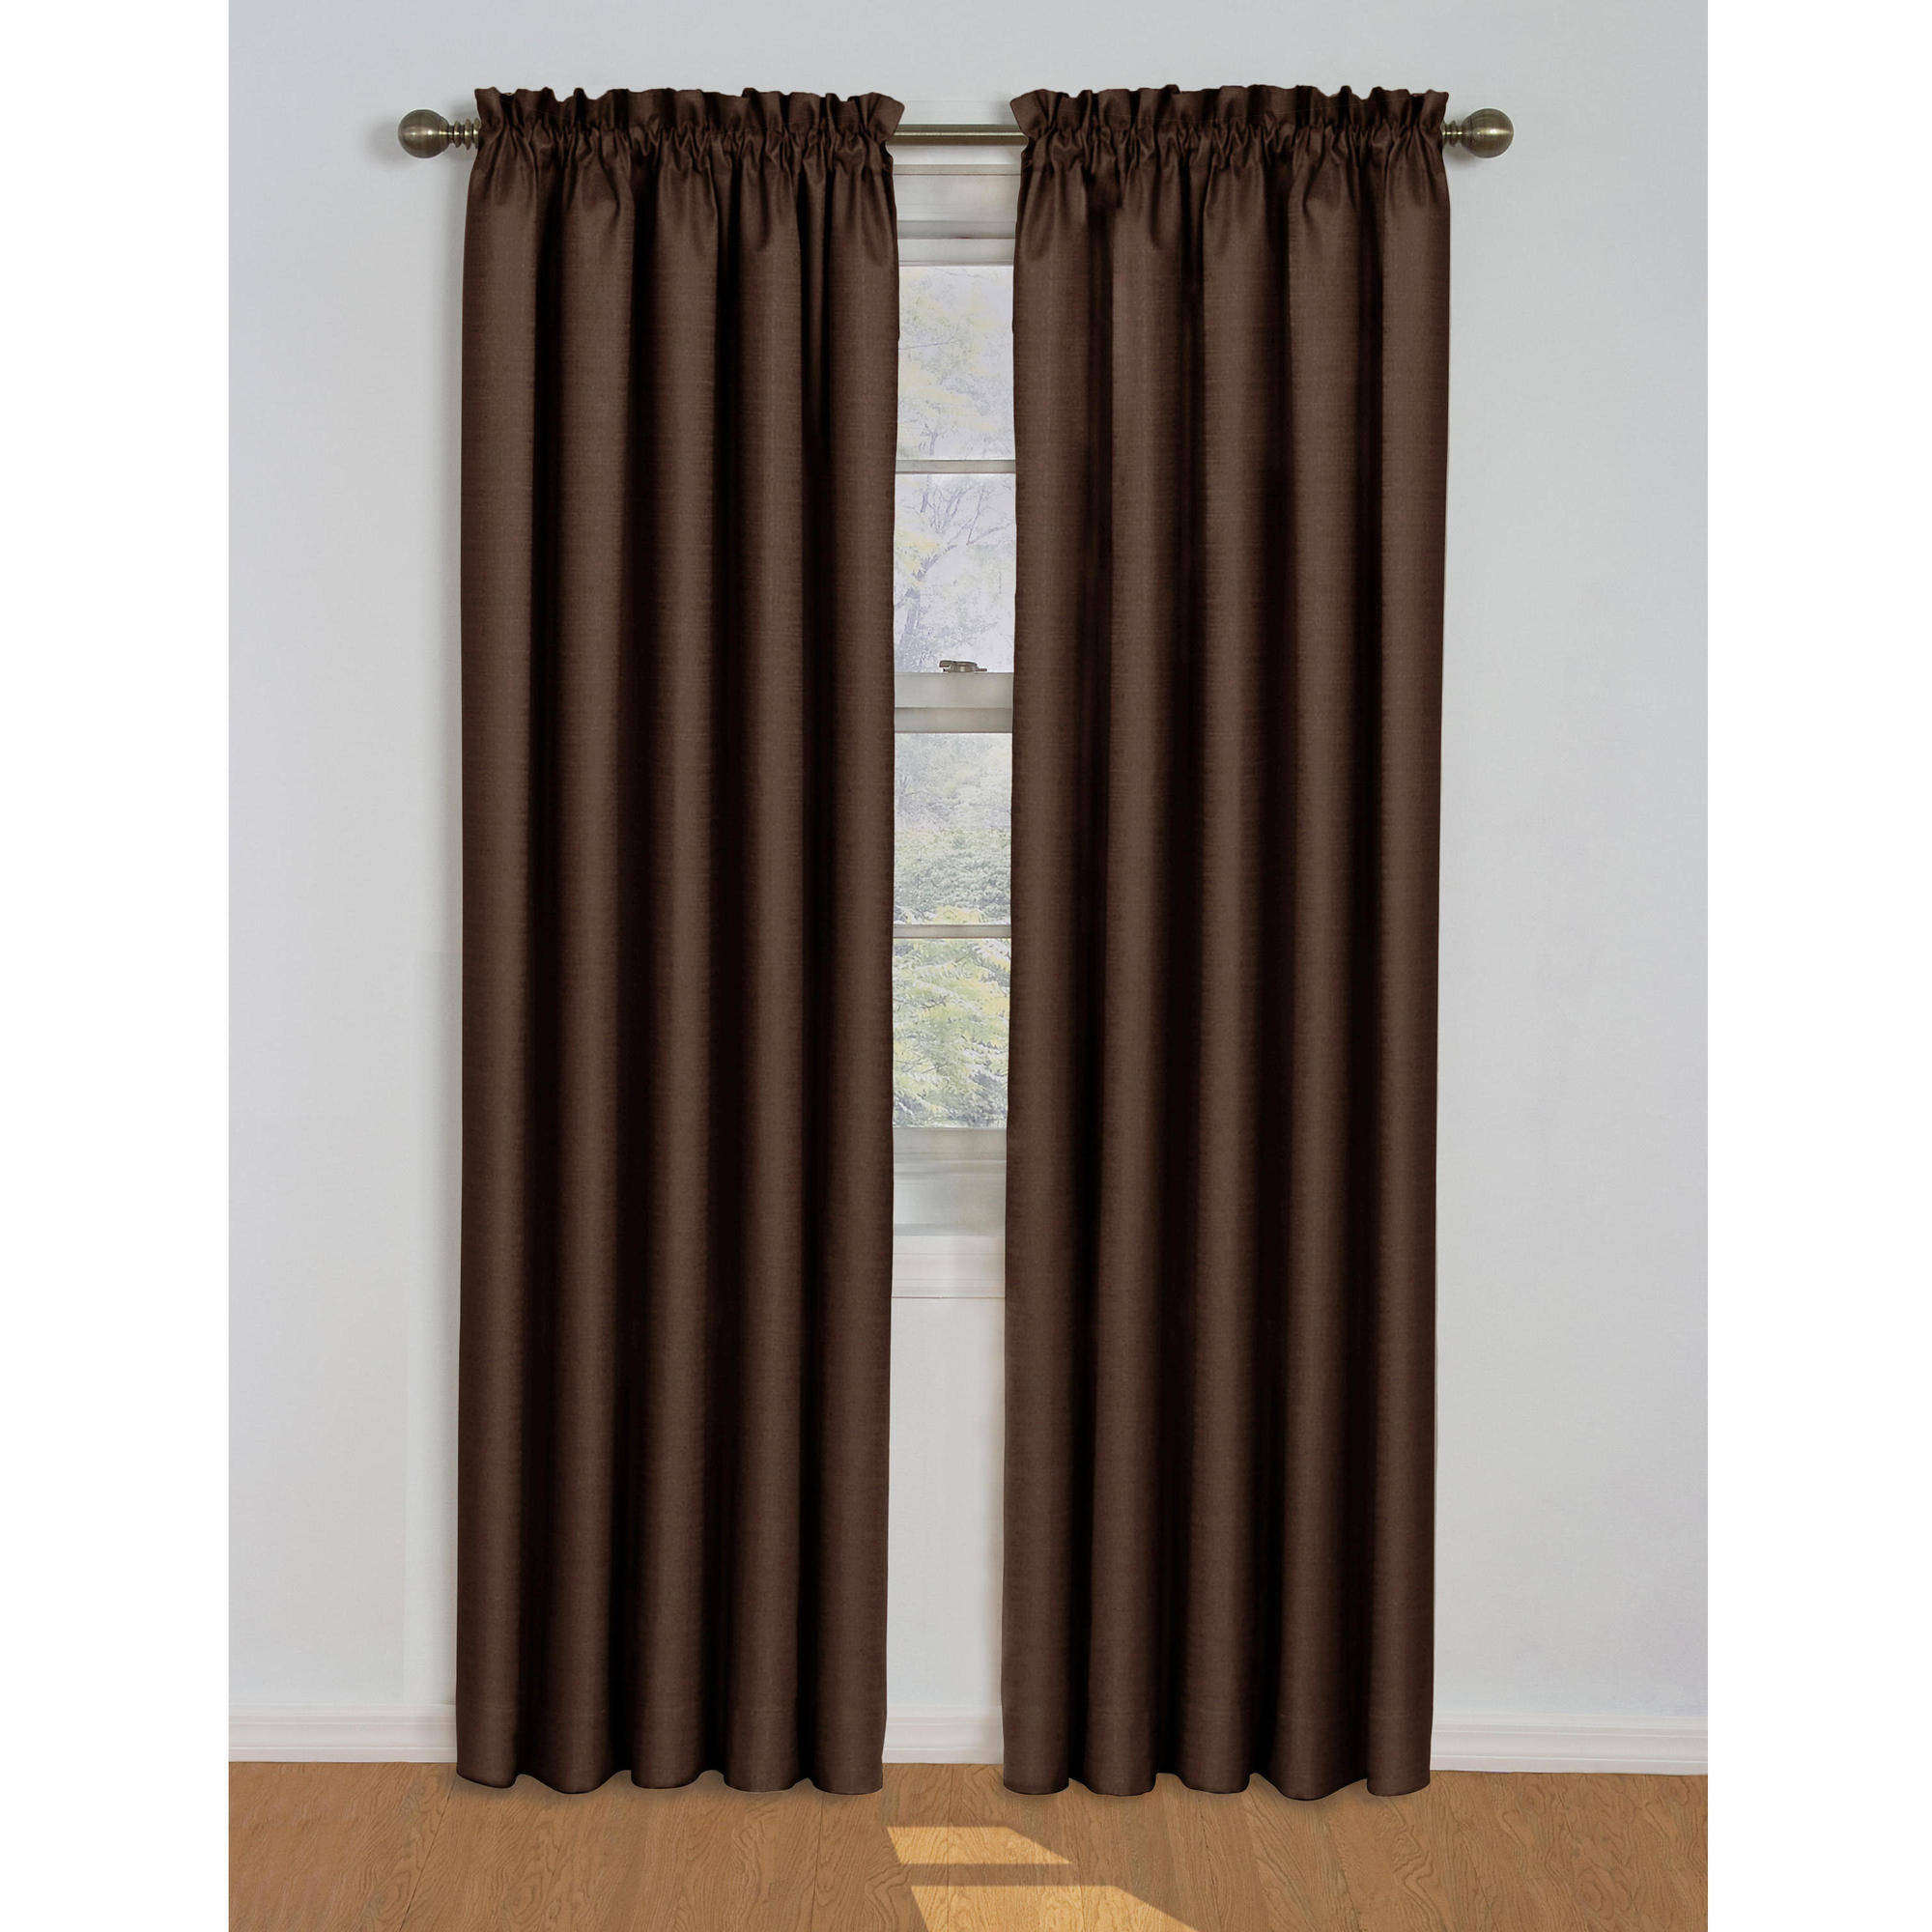 blackout shipping curtains overstock curtain efficient product panel velvet garden elrene top victoria today energy home free grommet